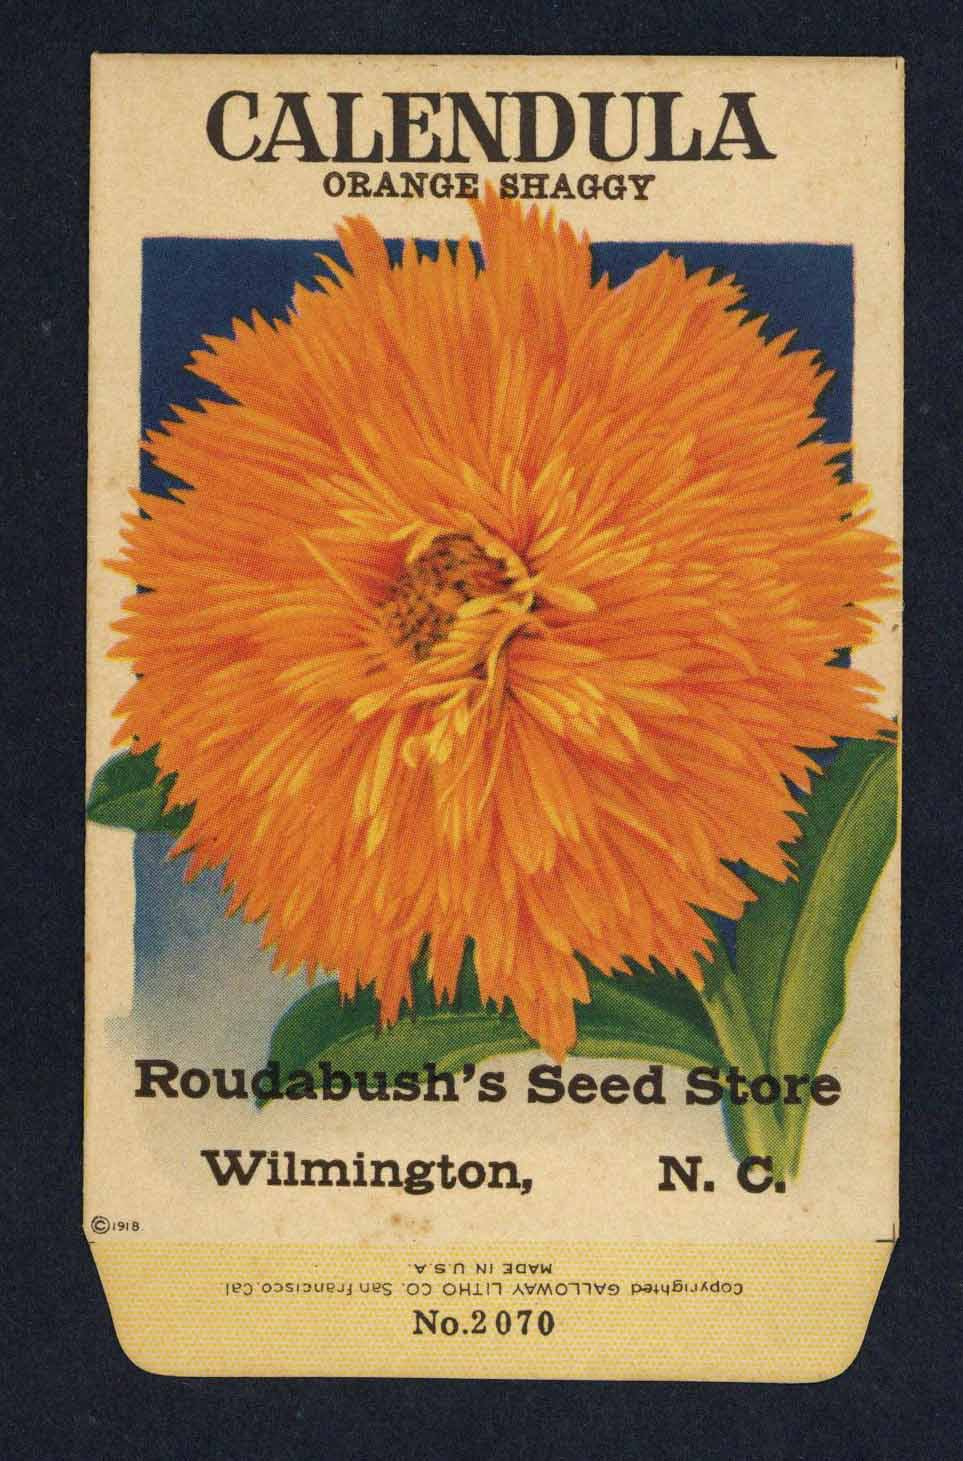 Calendula Antique Roudabush's Seed Store Seed Packet, Shaggy